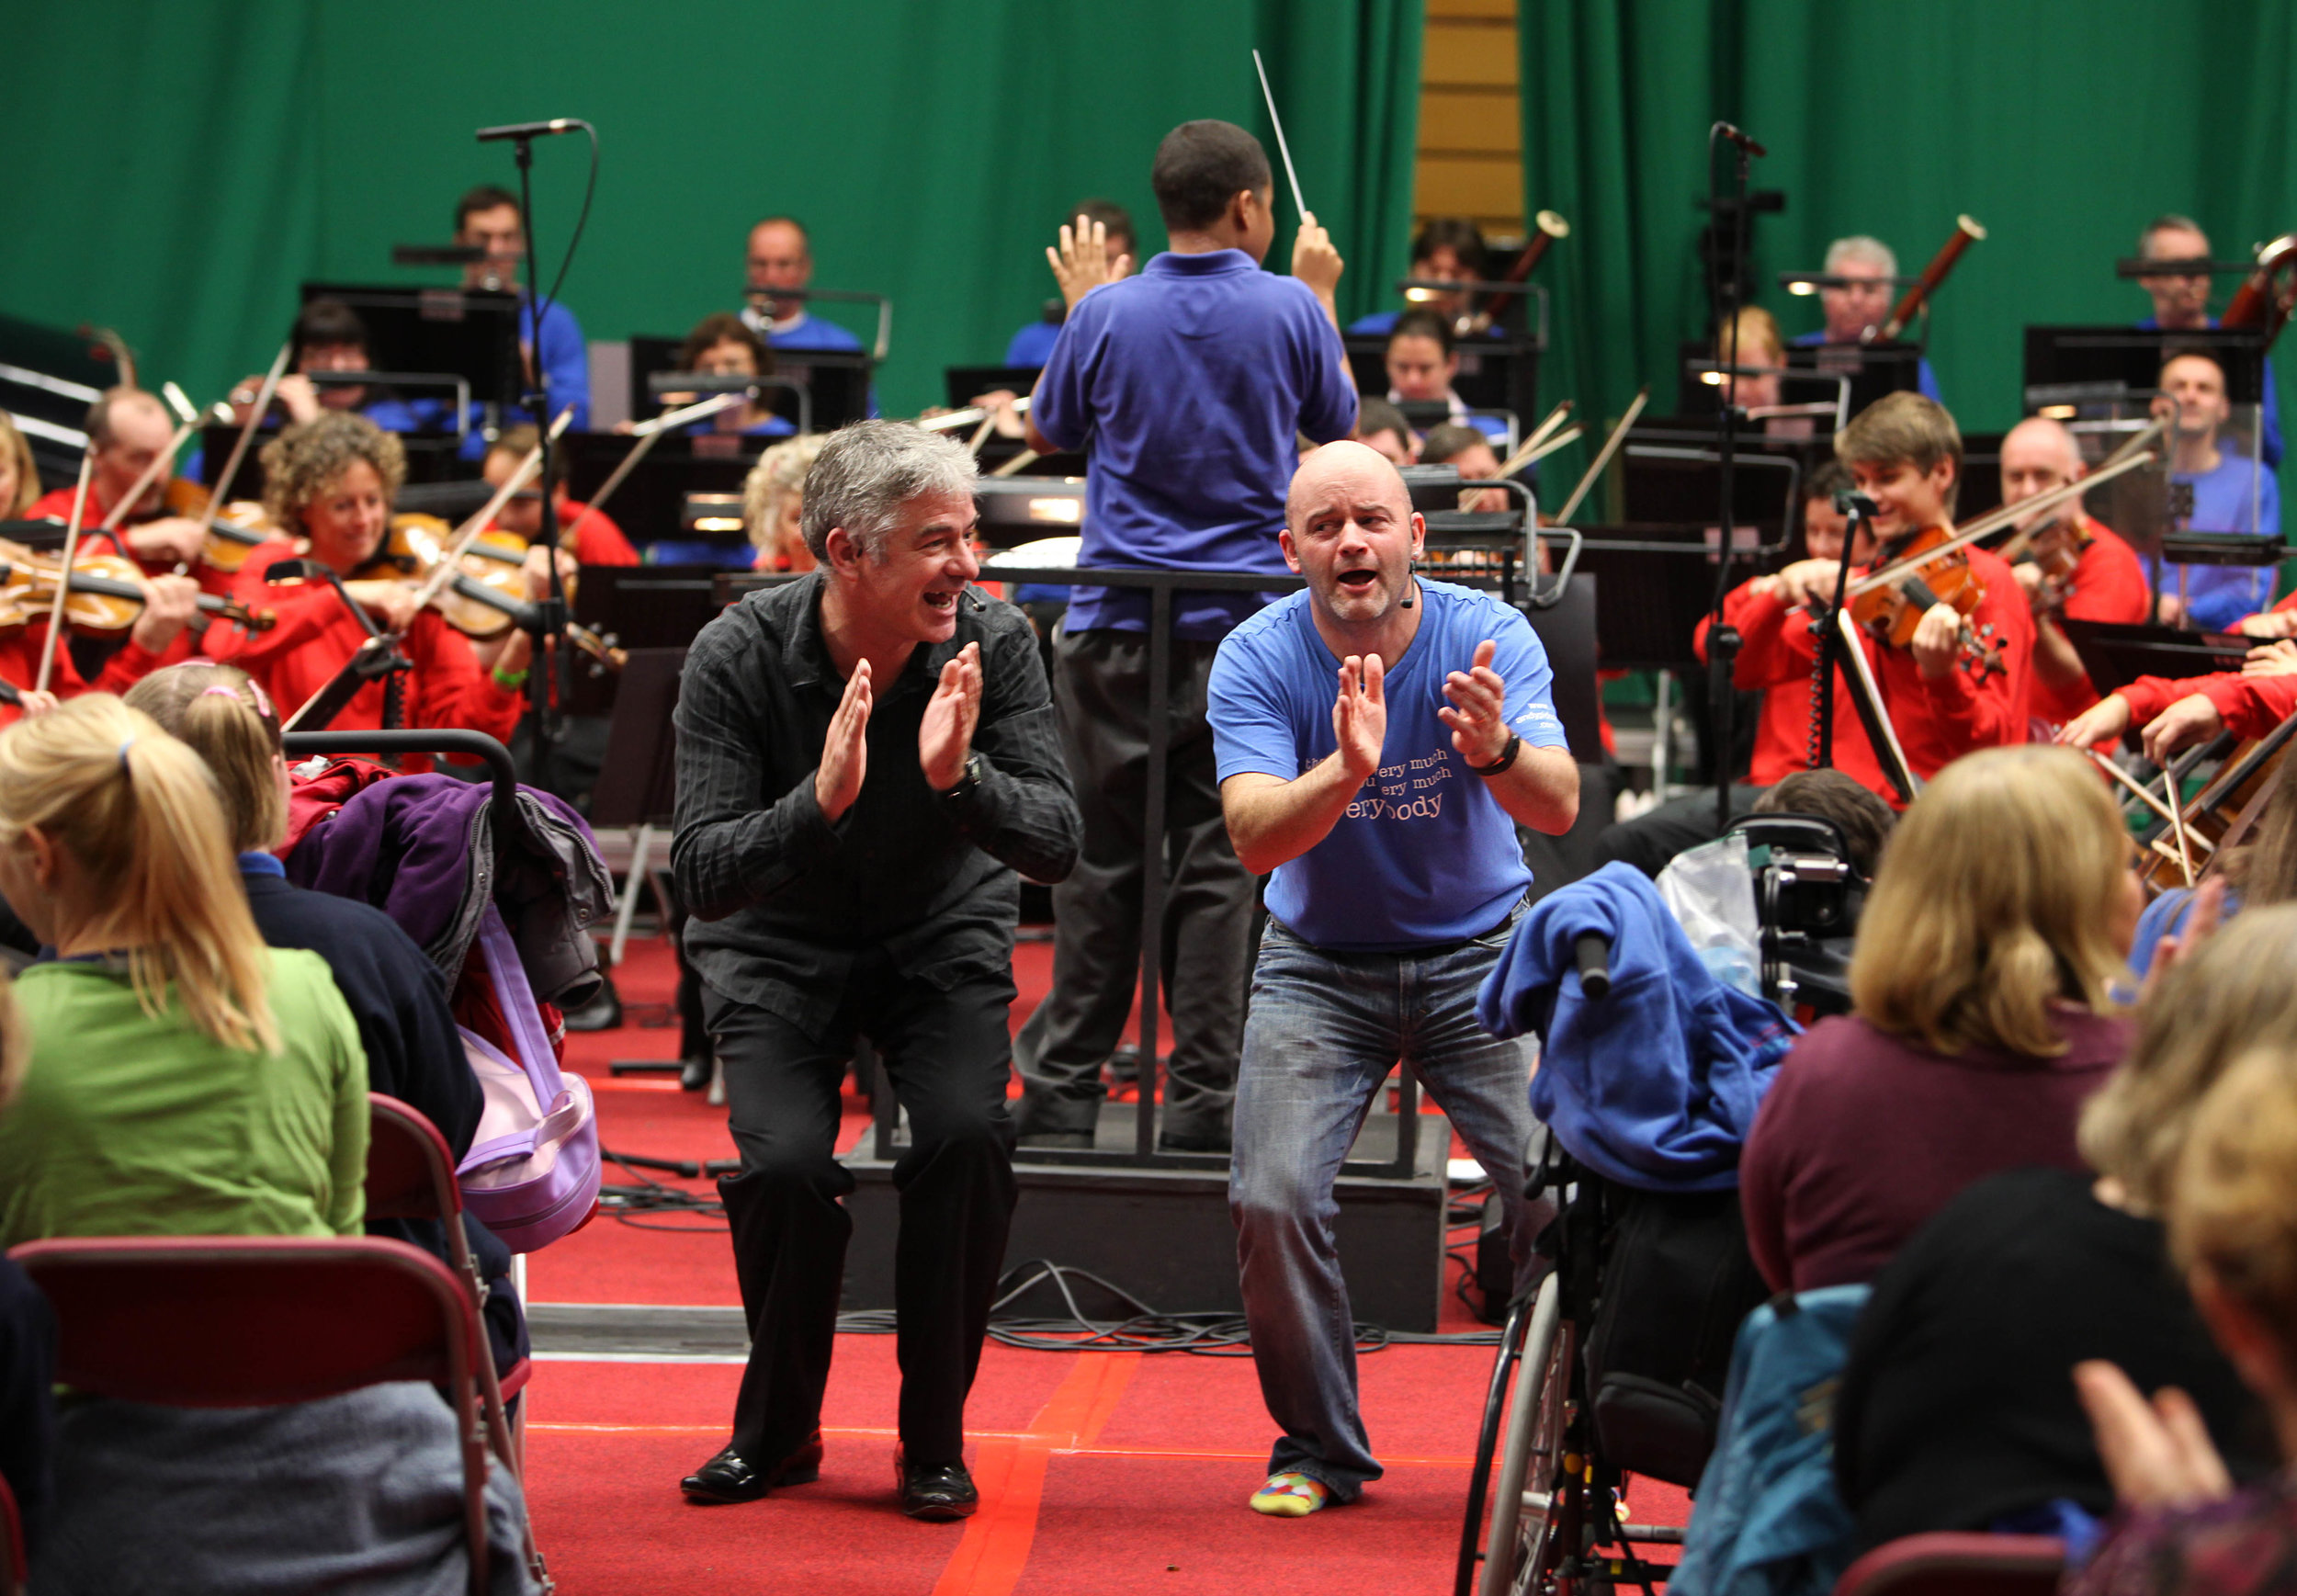 Grant Llewllyn and Andy Pidcock who lead the Relaxed Prom (cred Betina Skovbro)